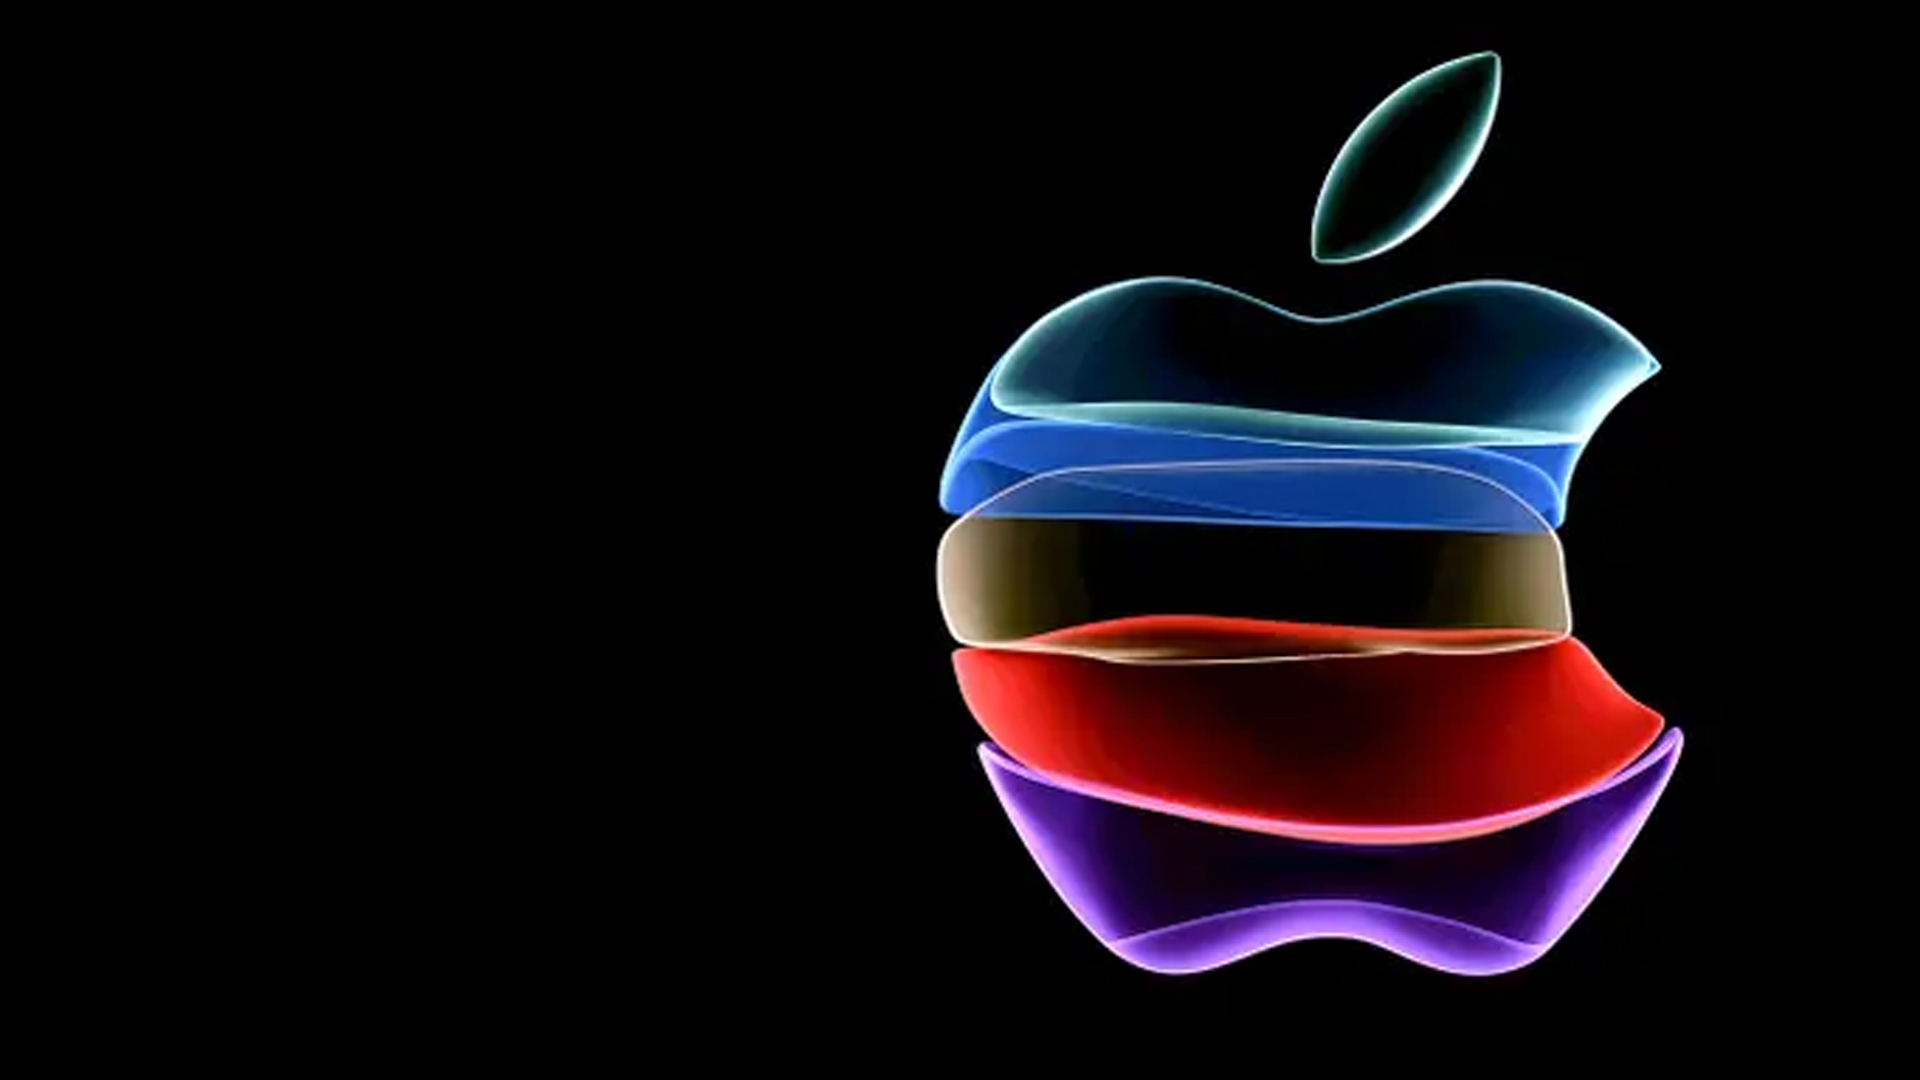 Time flies: Τι είδαμε στο Special Event της Apple